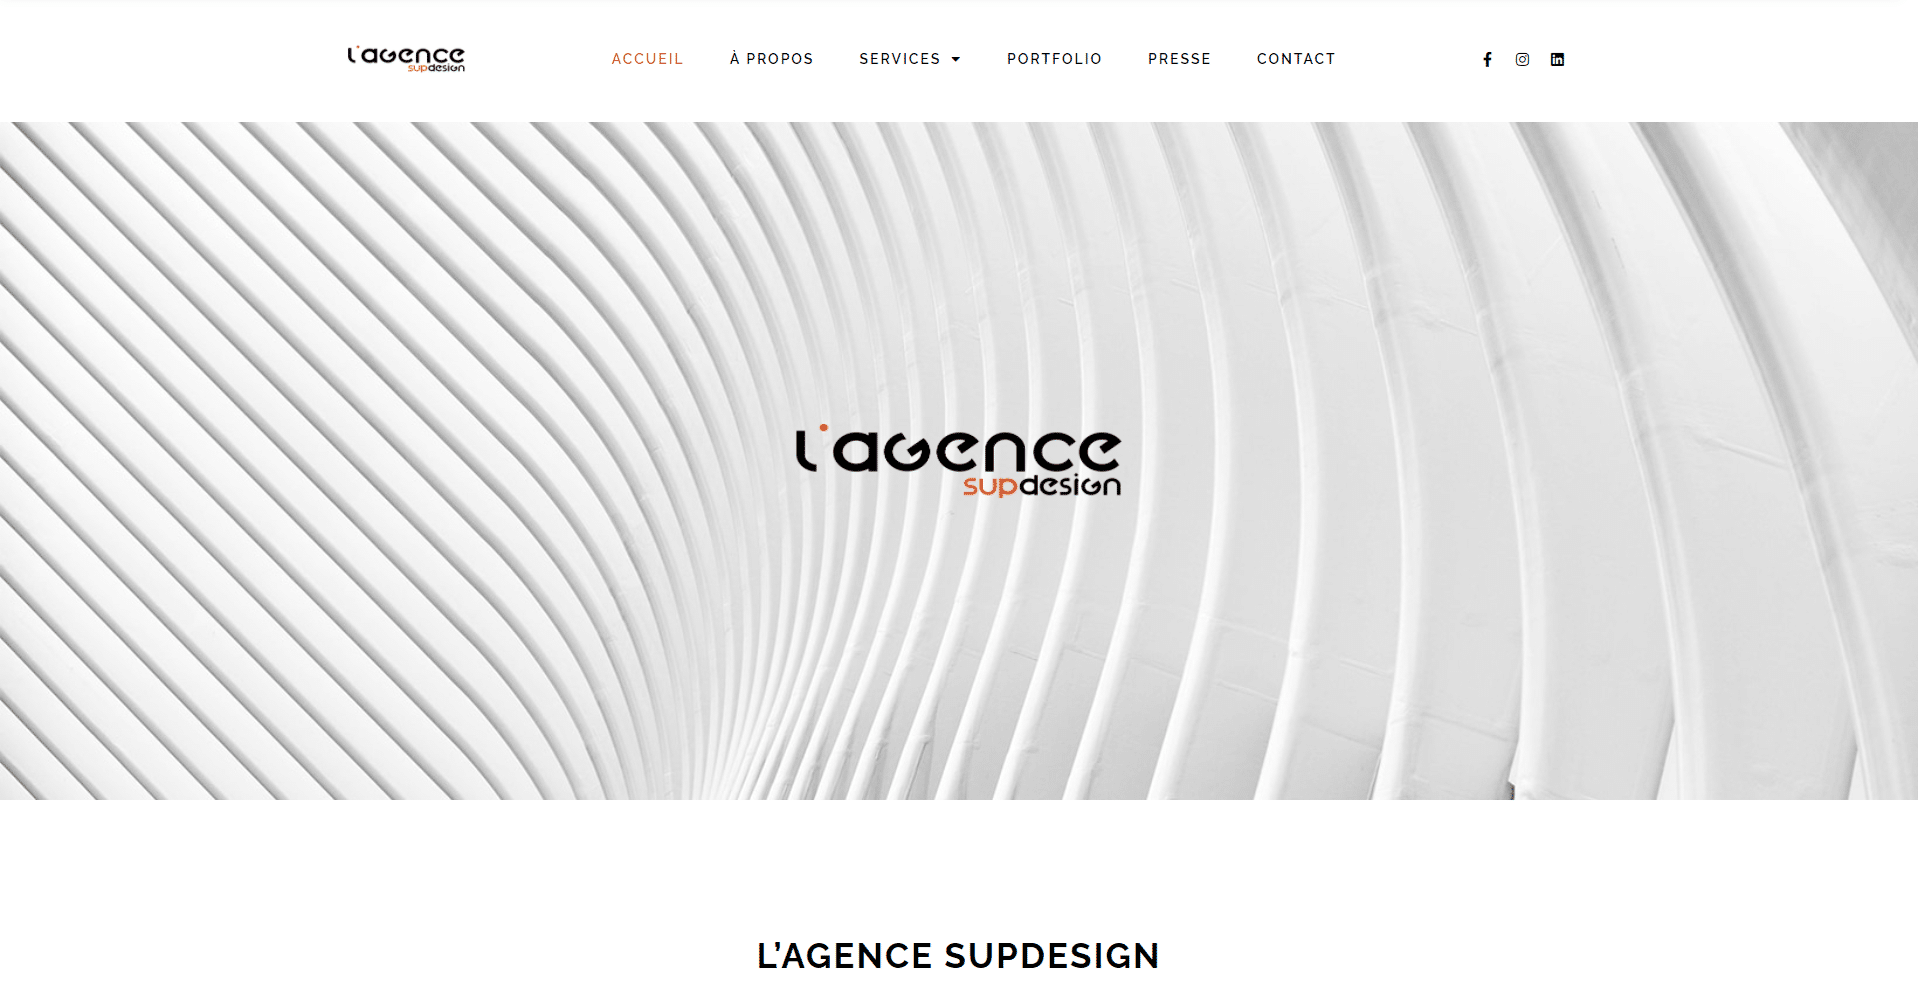 L'agence SupDesign